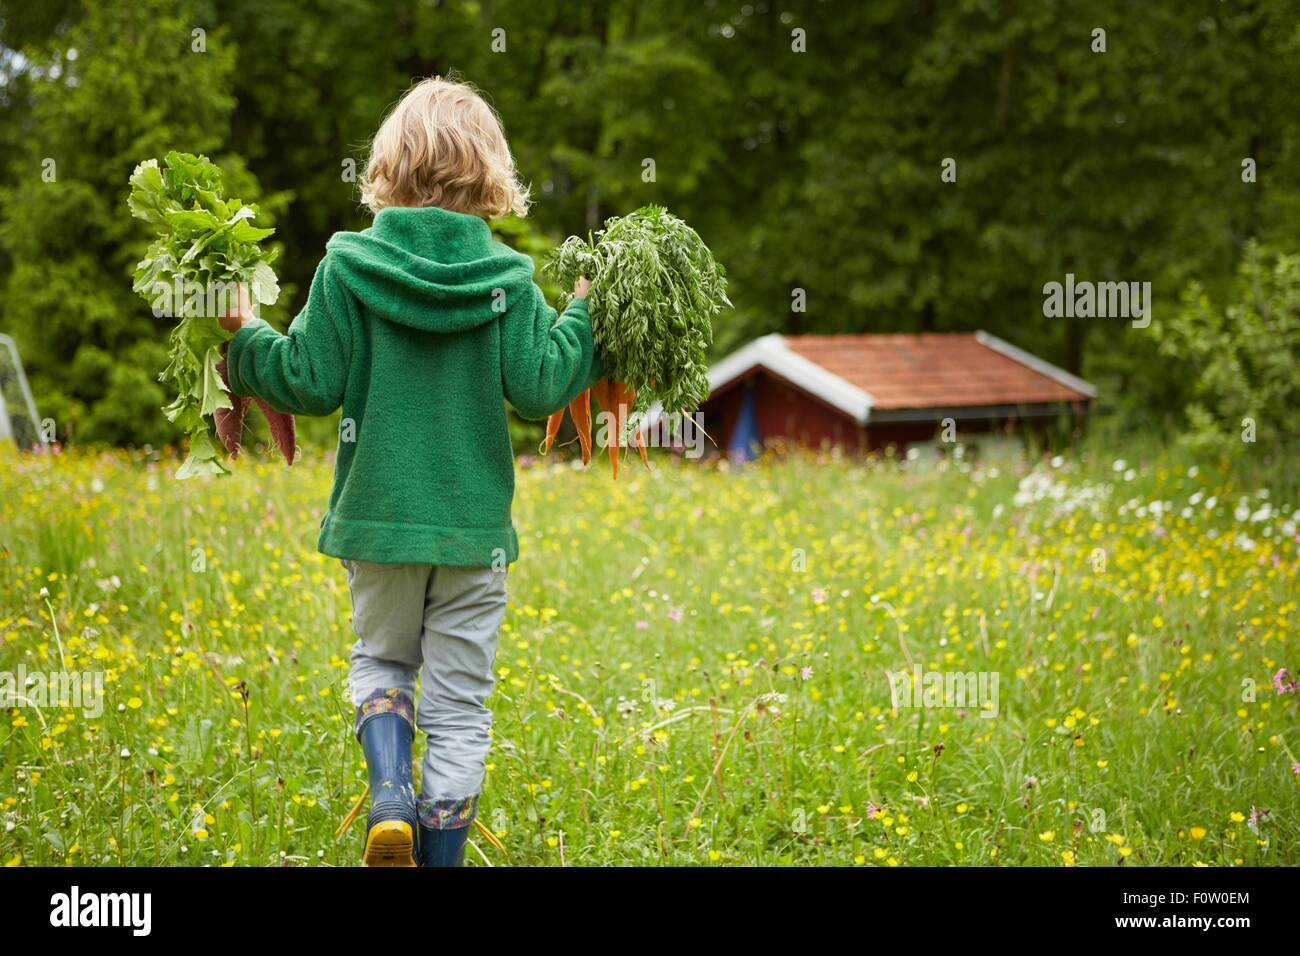 Rear view of boy carrying carrots across garden Stock Photo